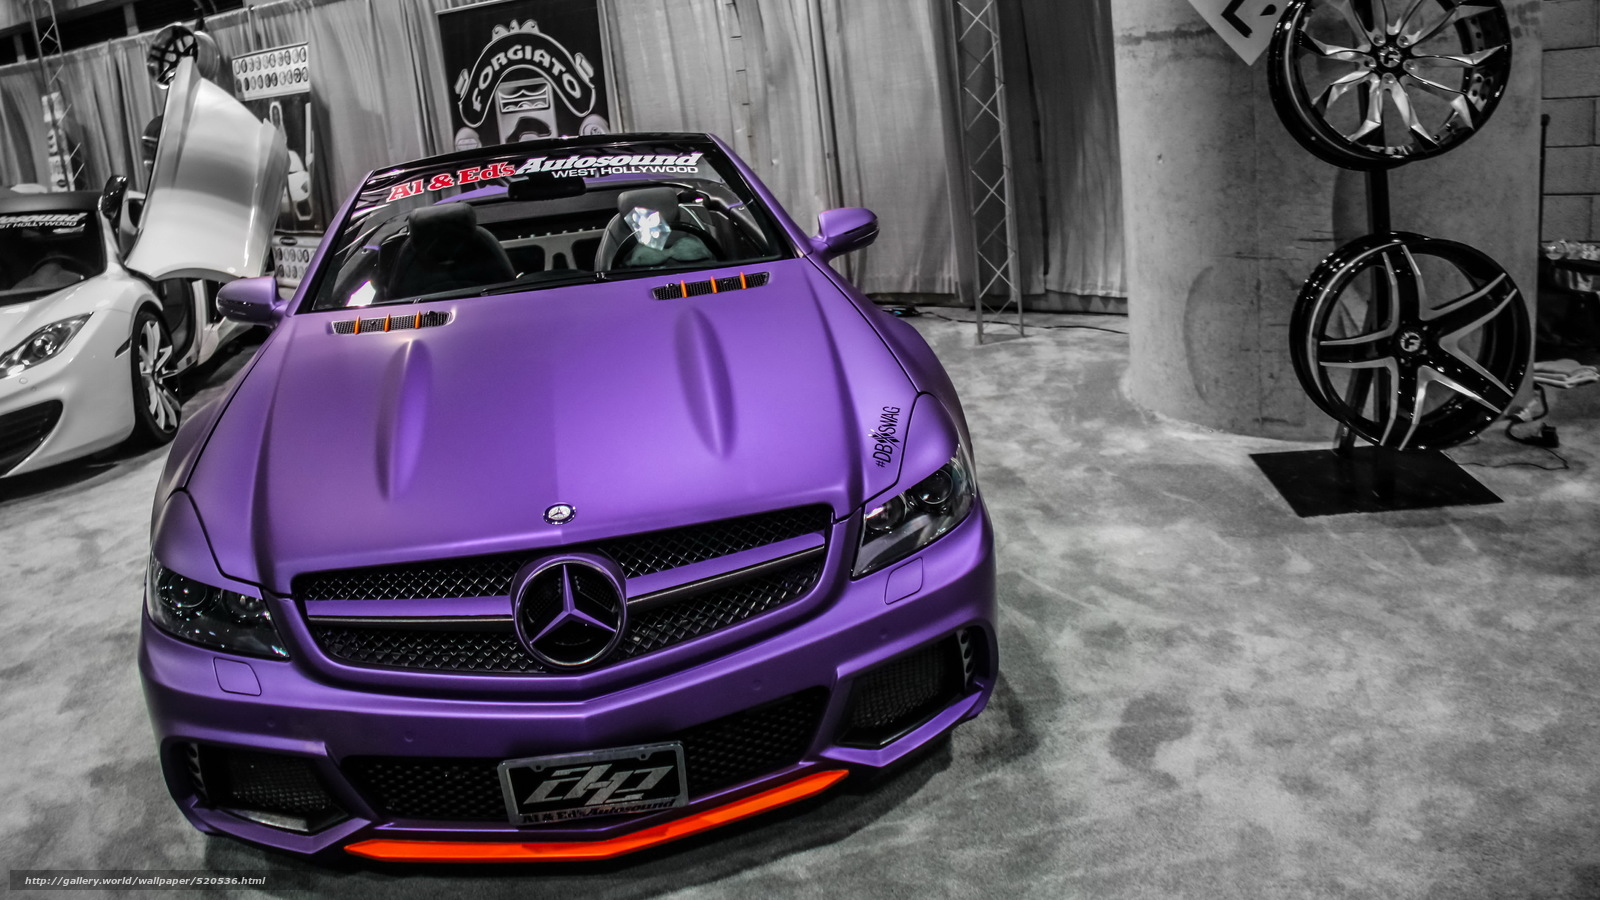 Download wallpaper mercedes,  Tuning,  Cabriolet,  purple free desktop wallpaper in the resolution 4752x2673 — picture №520536